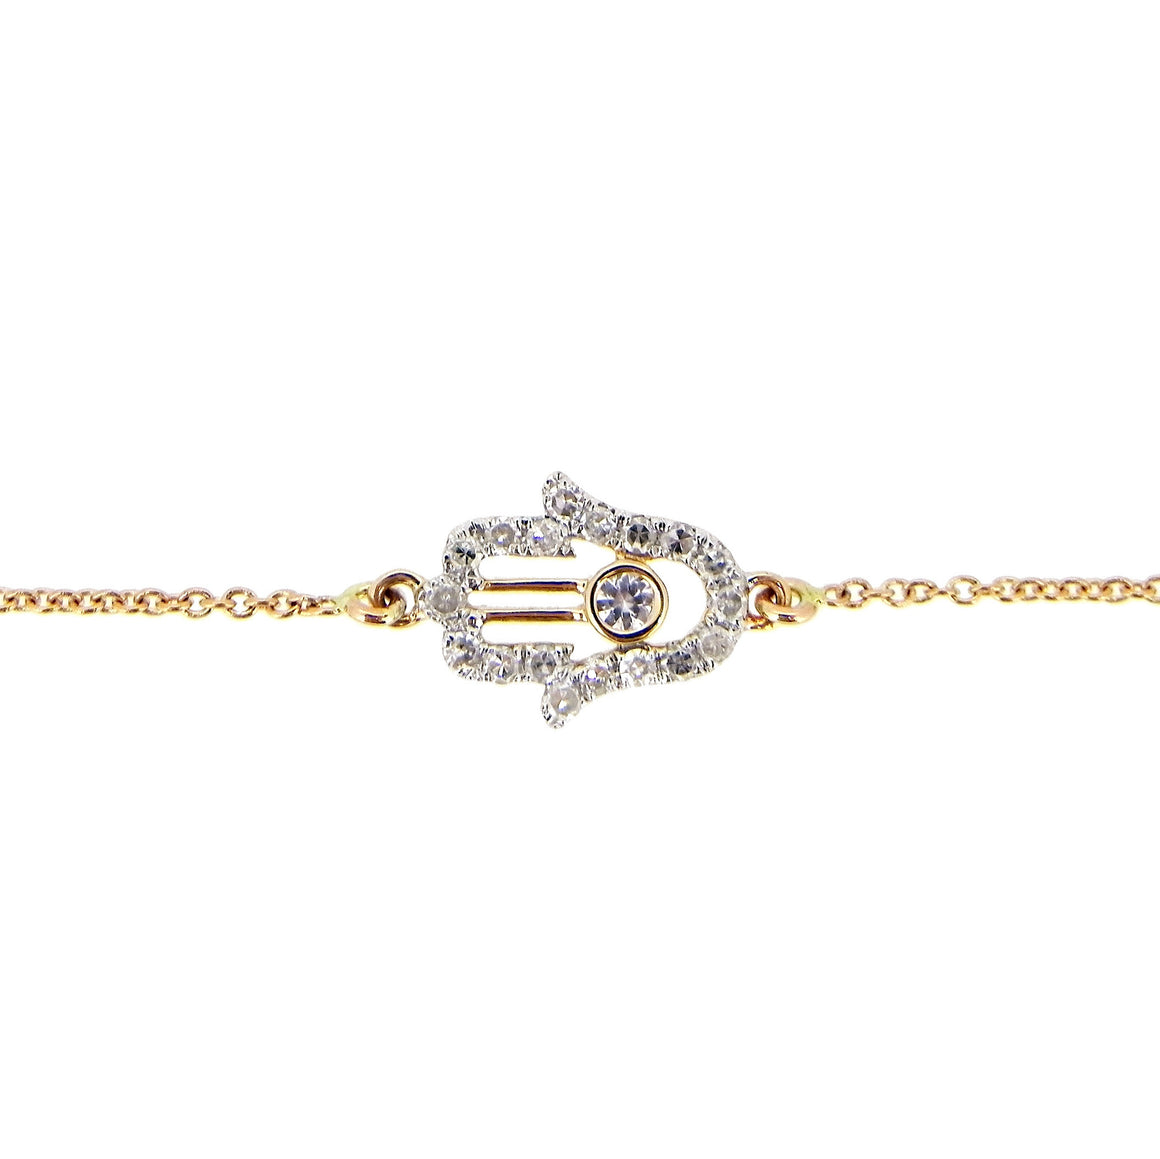 Hamzah White Diamonds Bracelet in 14Karat Rose Gold